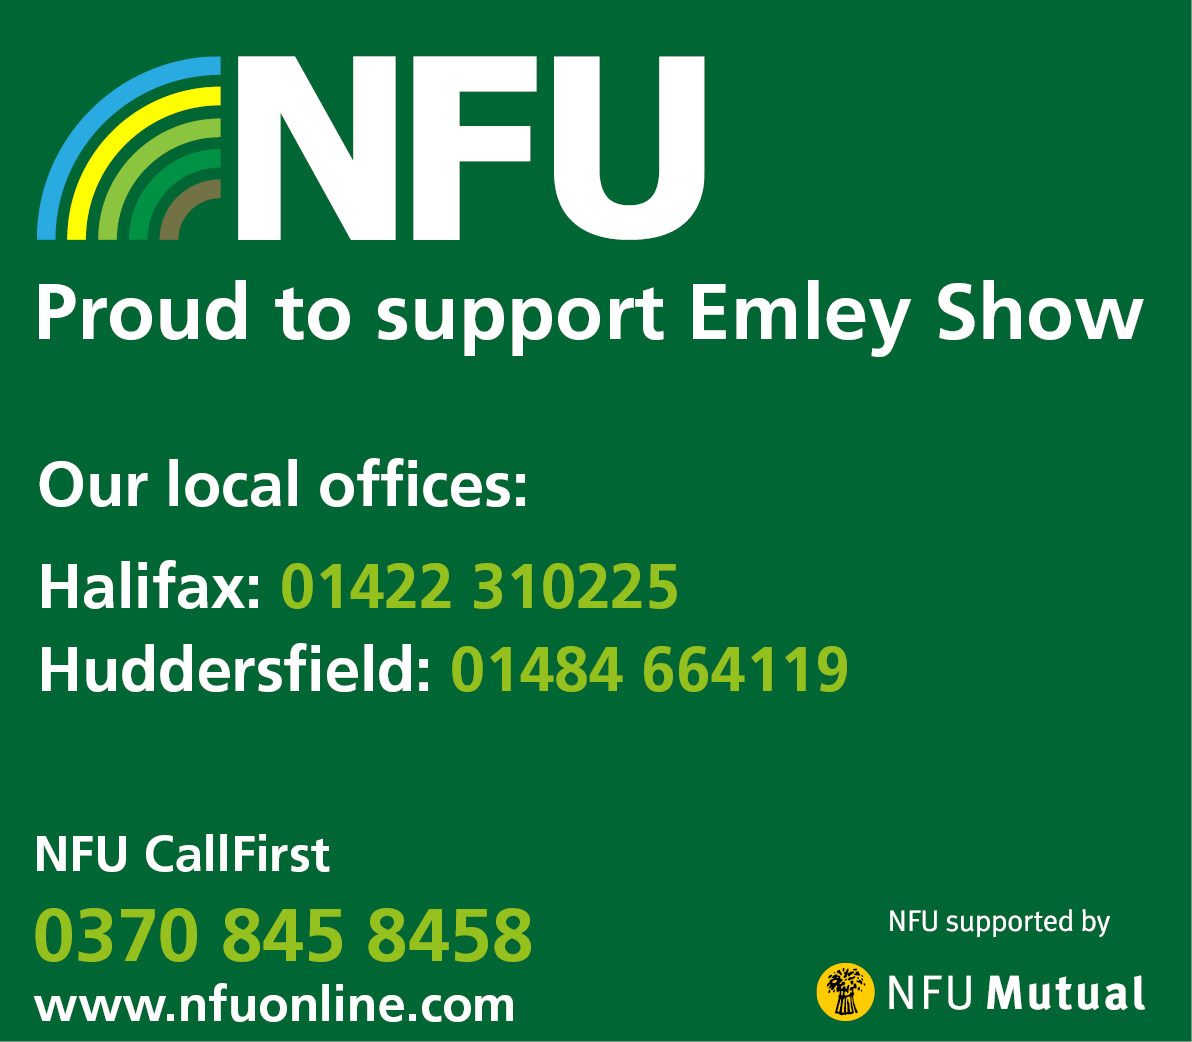 NFU - Proud to support Emley Show